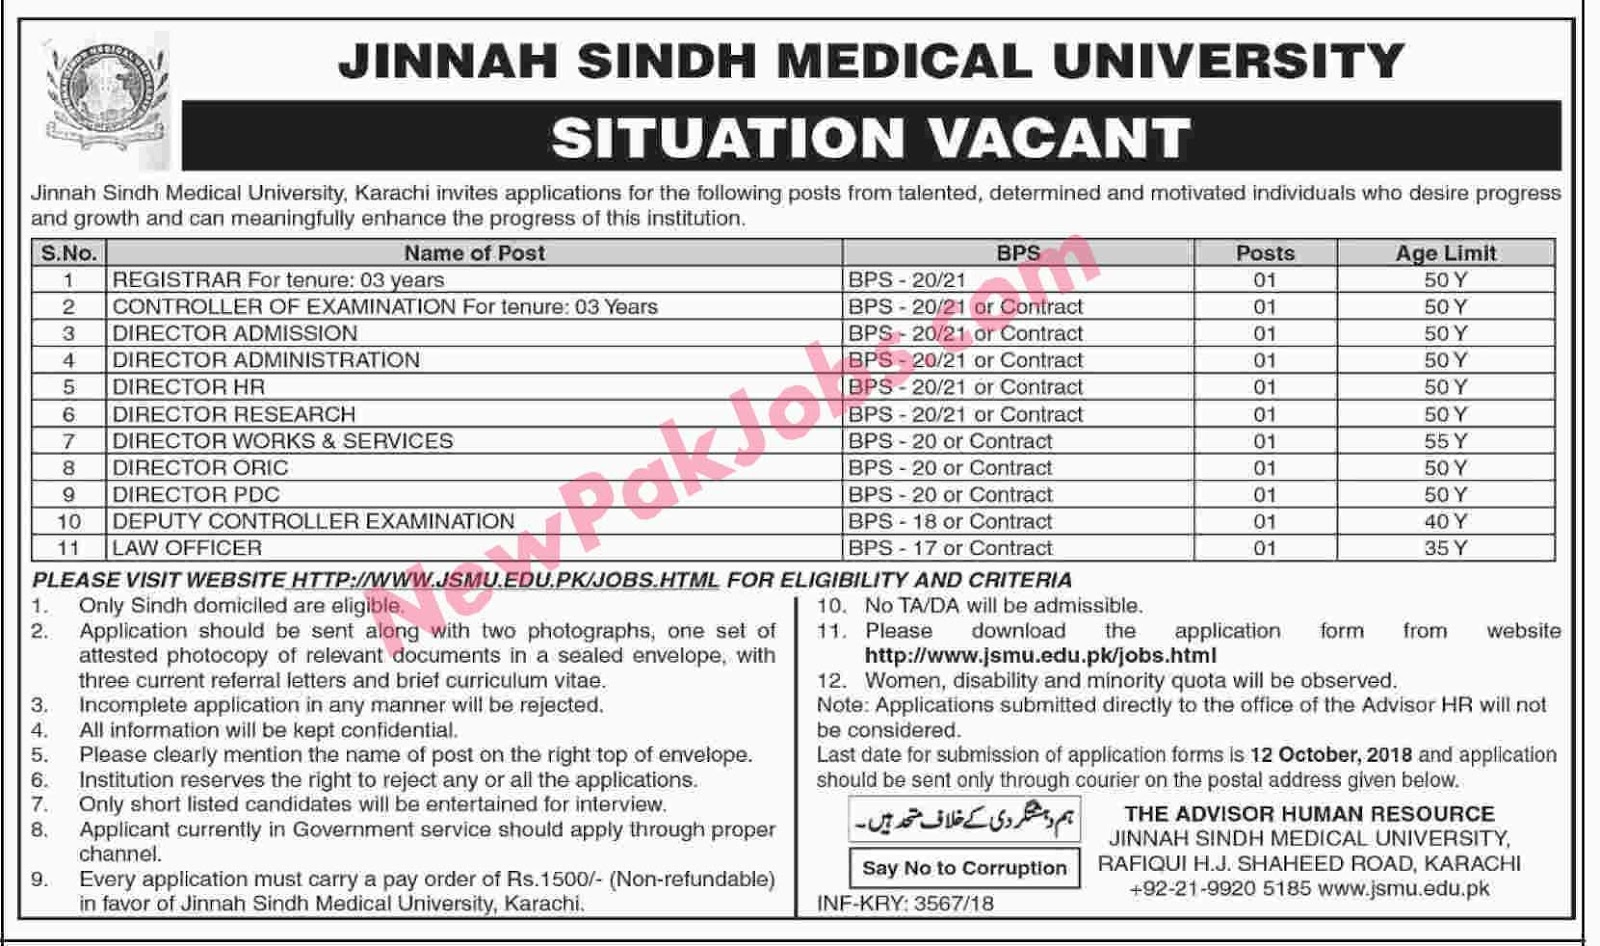 Today Jobs in Jinnah Sindh Medical University Sept 2018